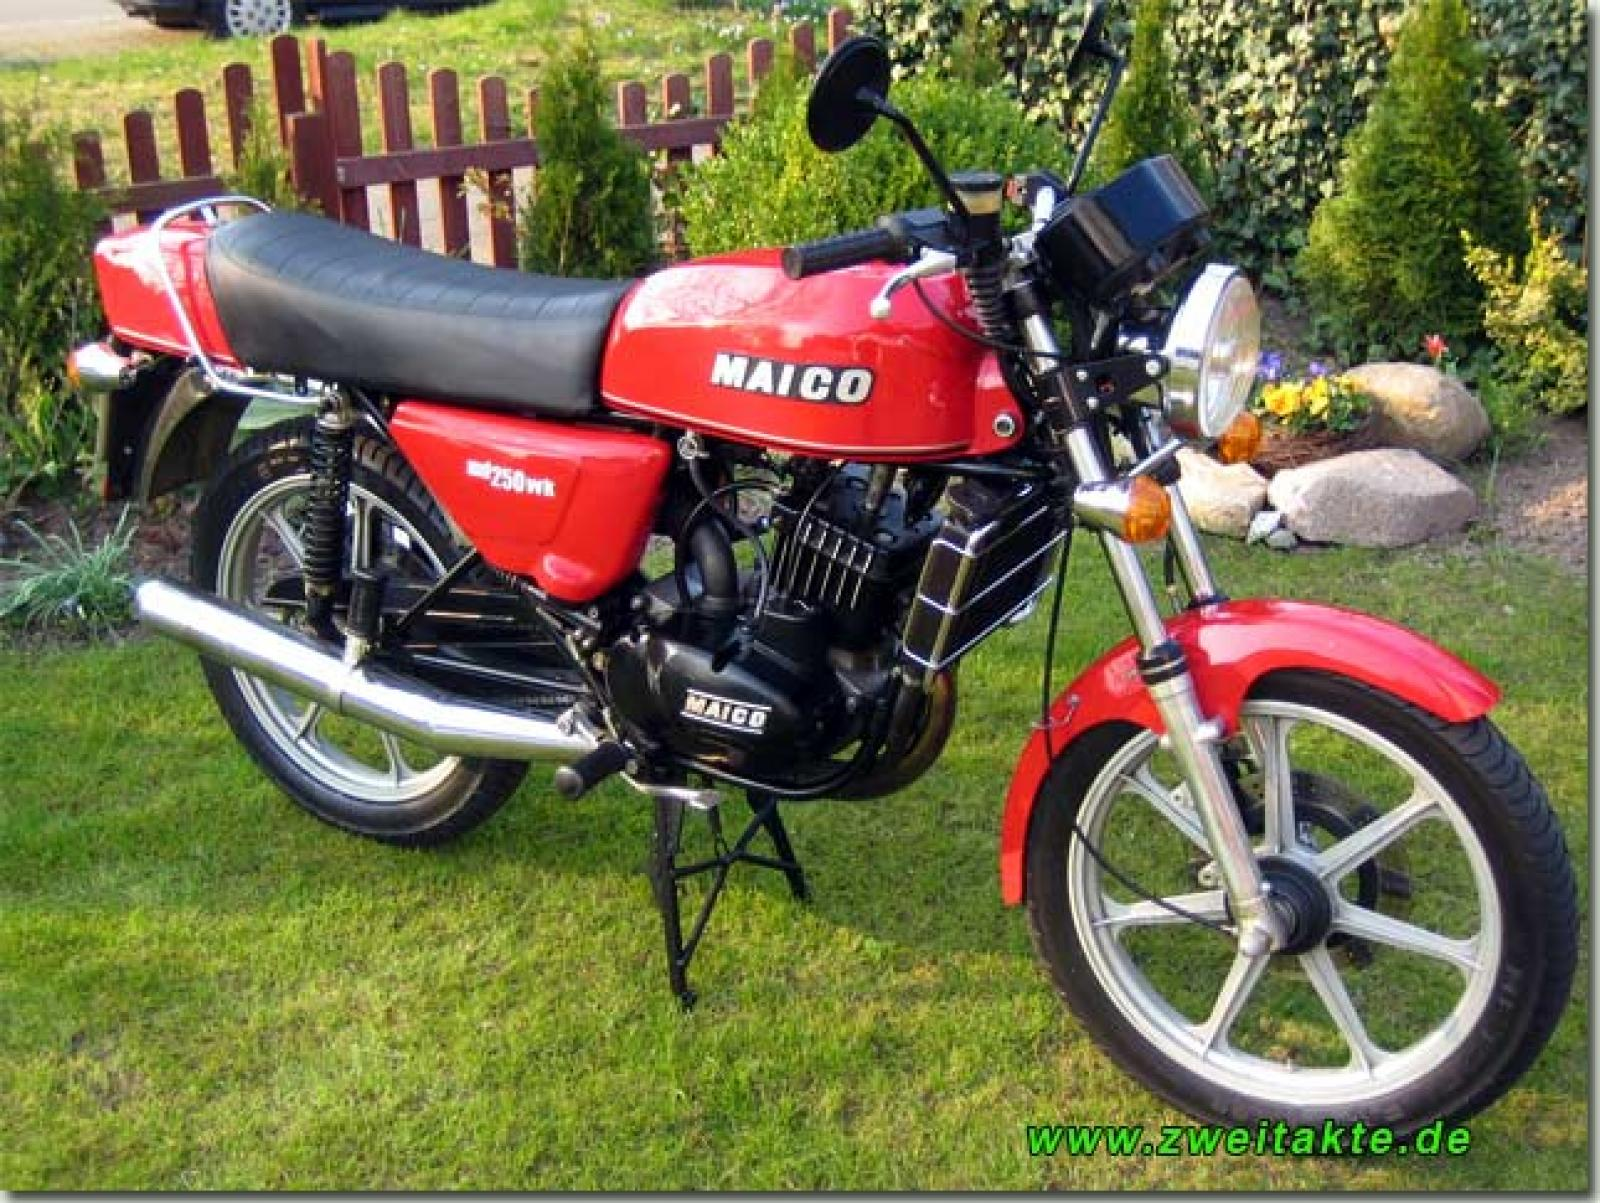 Maico MD 250 WK 1981 images #103499